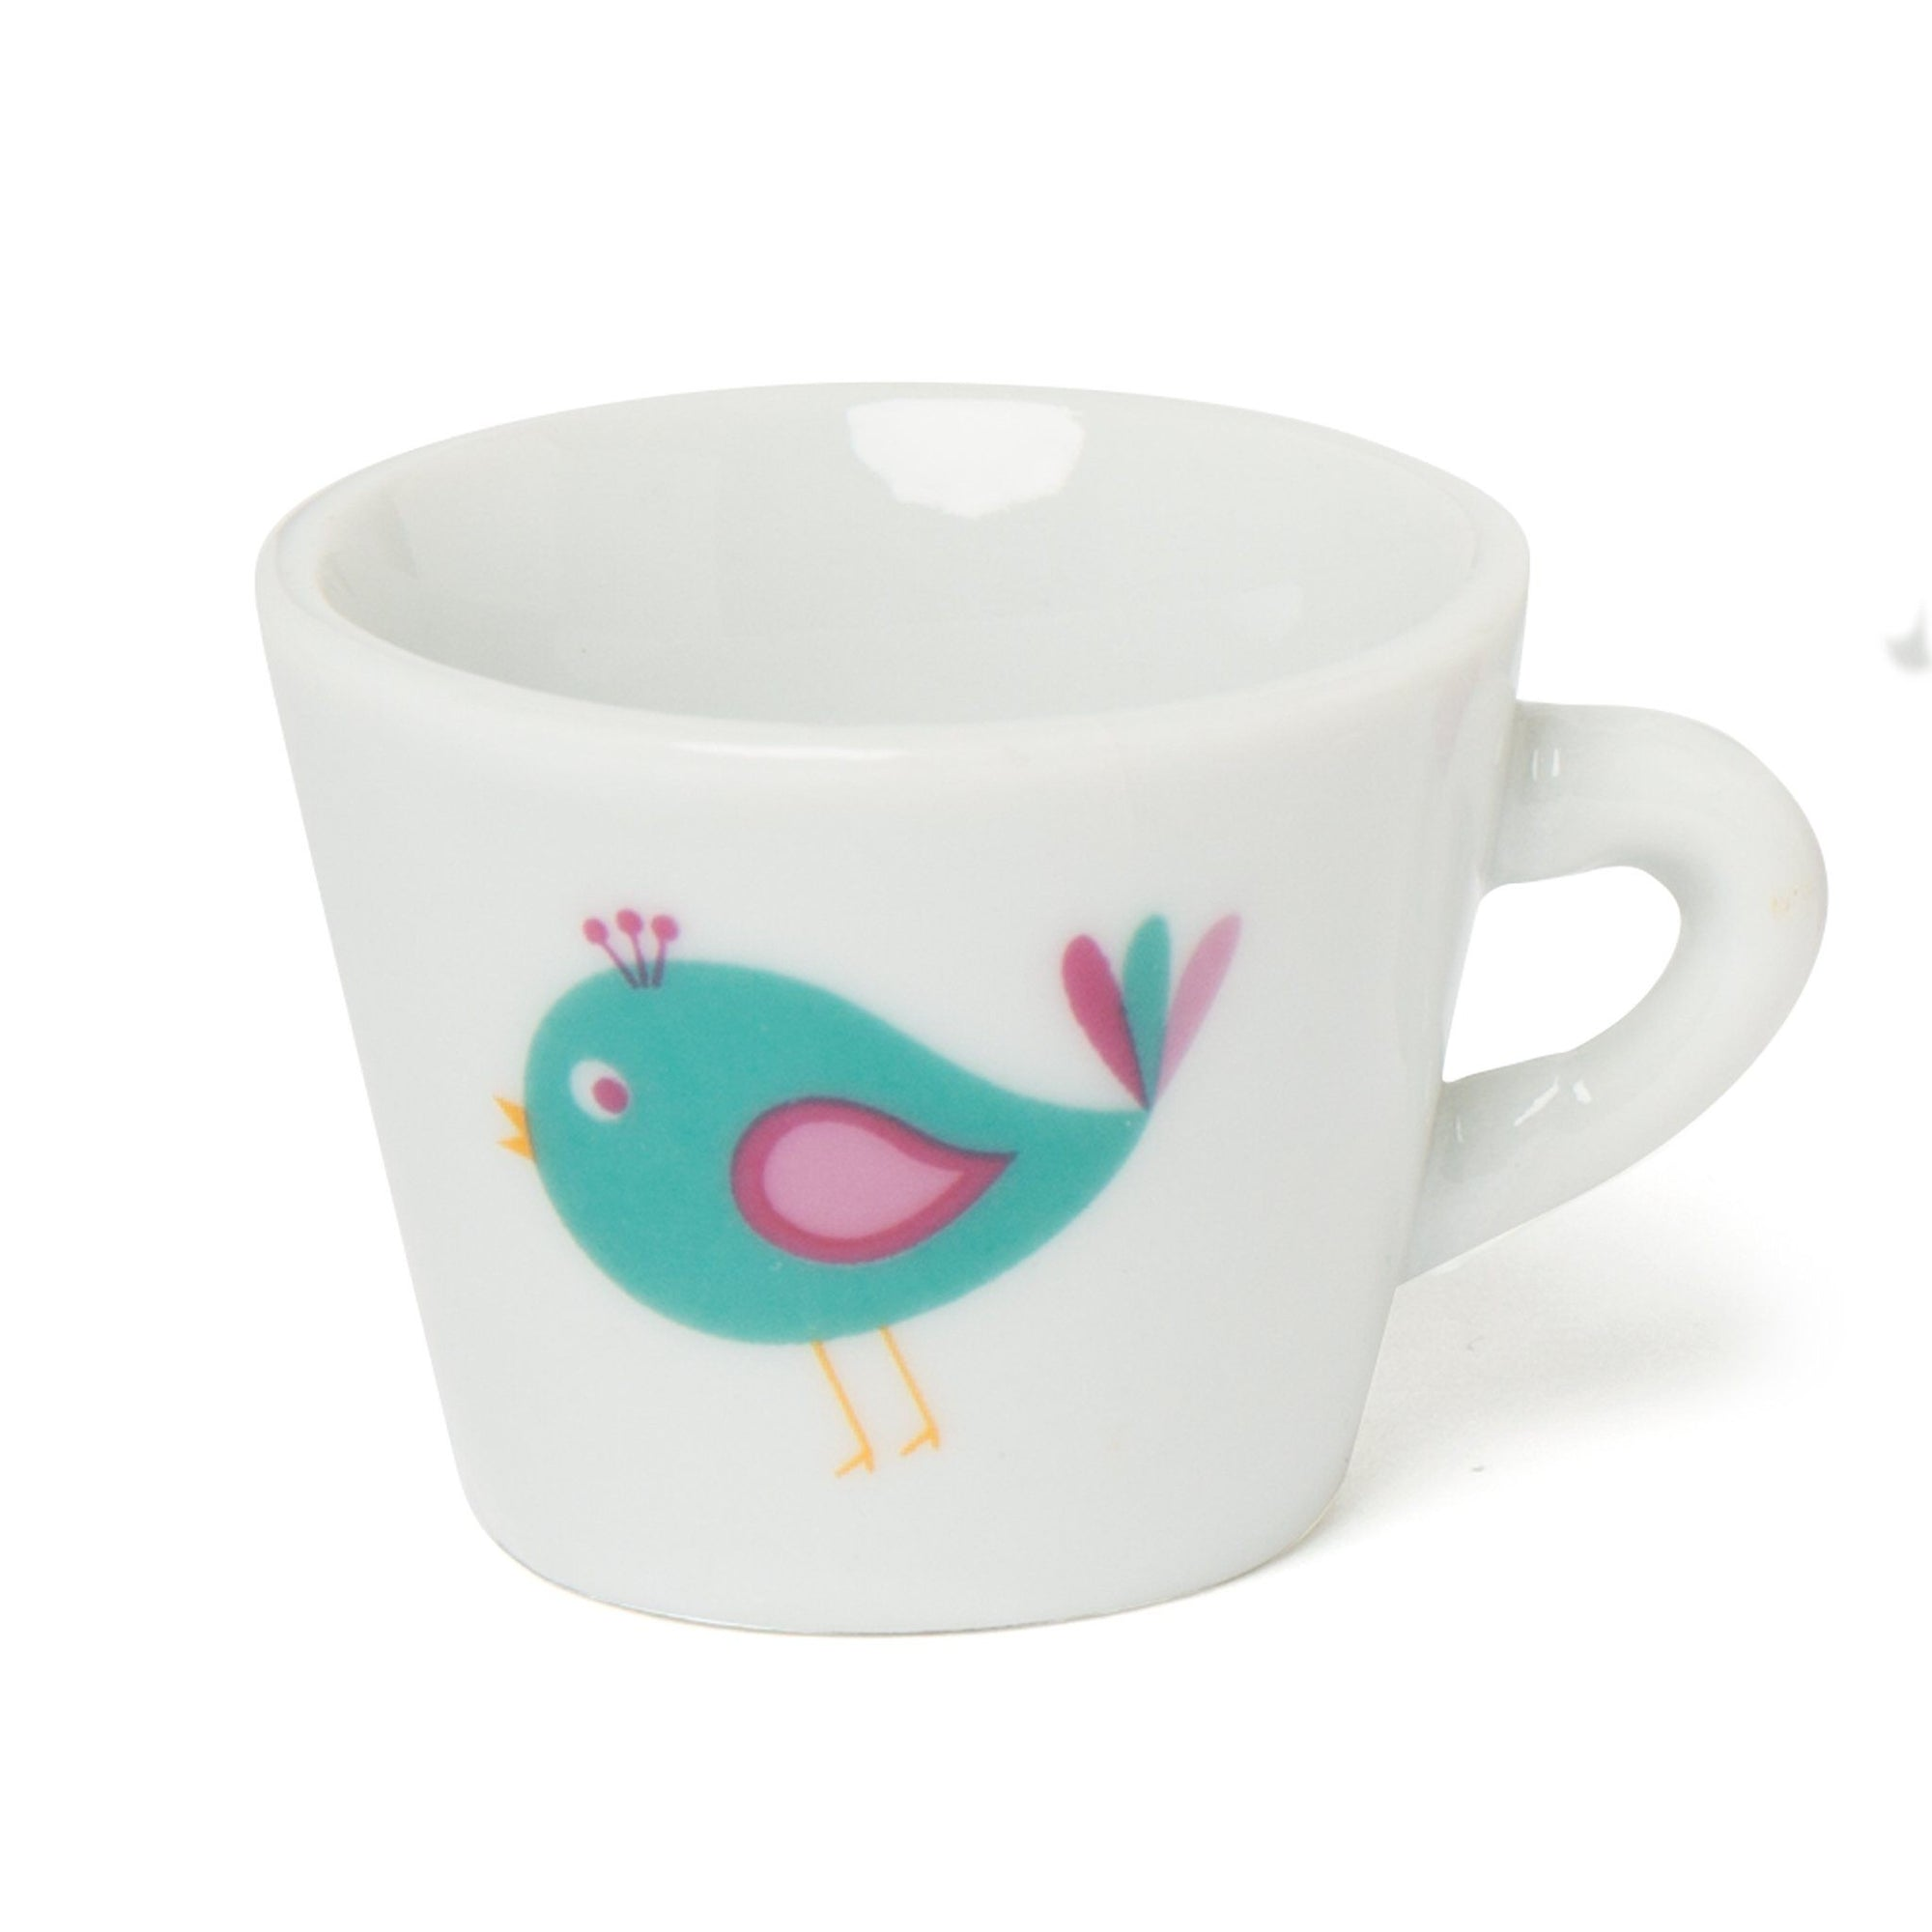 China tea cup with bird graphic, for 18 inch dolls.